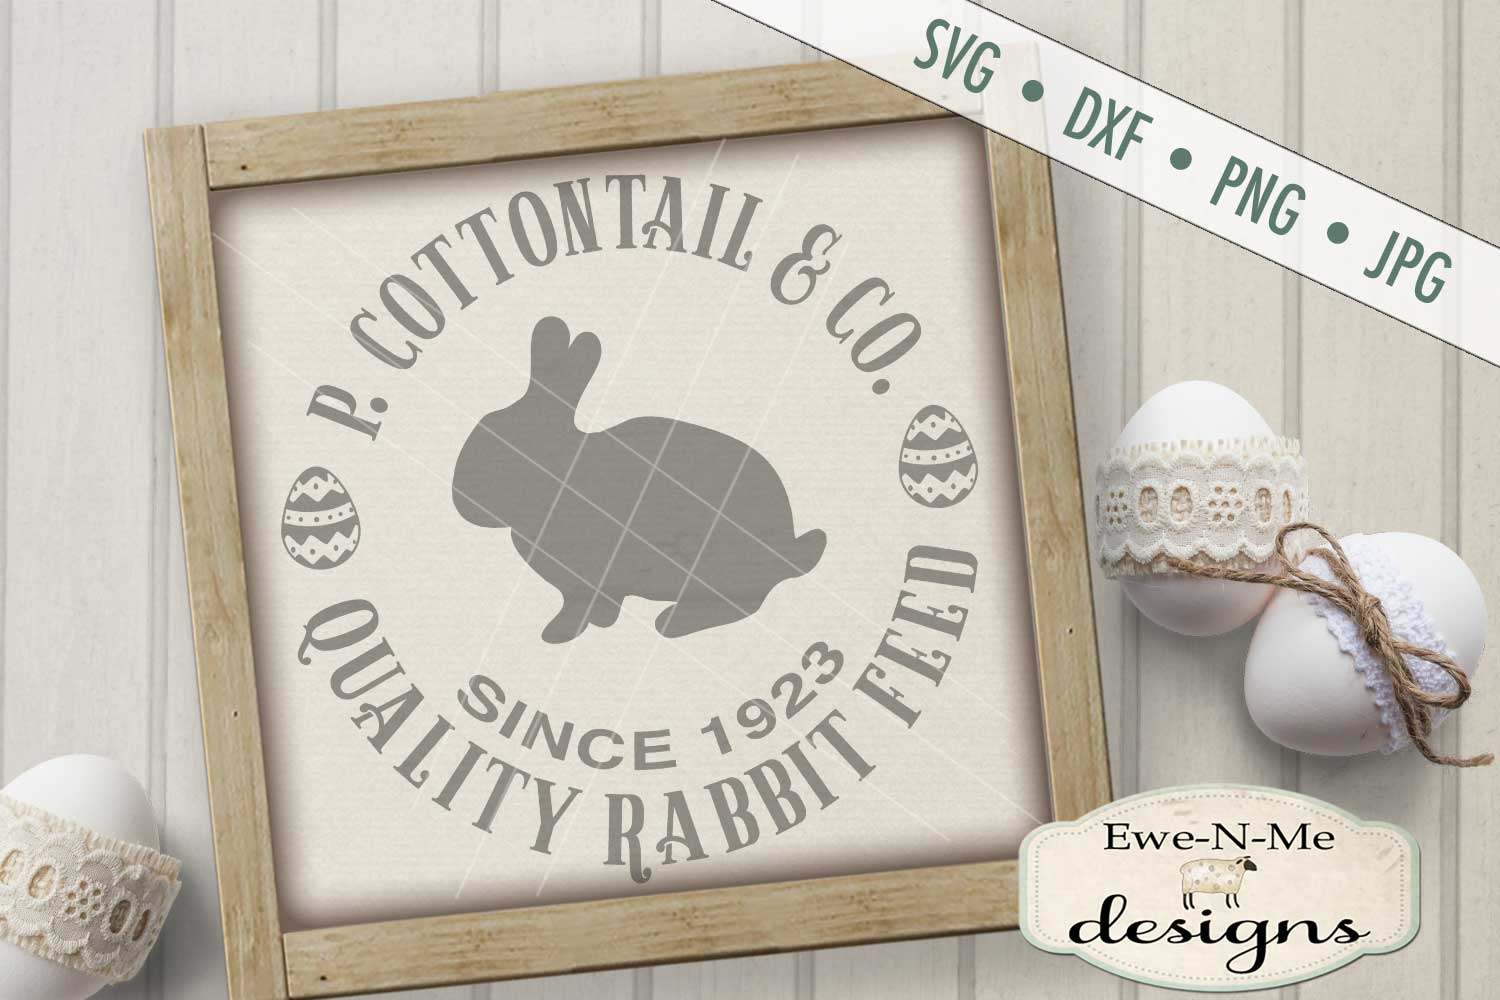 Easter Cottontail Bundle Easter Bunny Rabbit SVG DXF Files example image 3